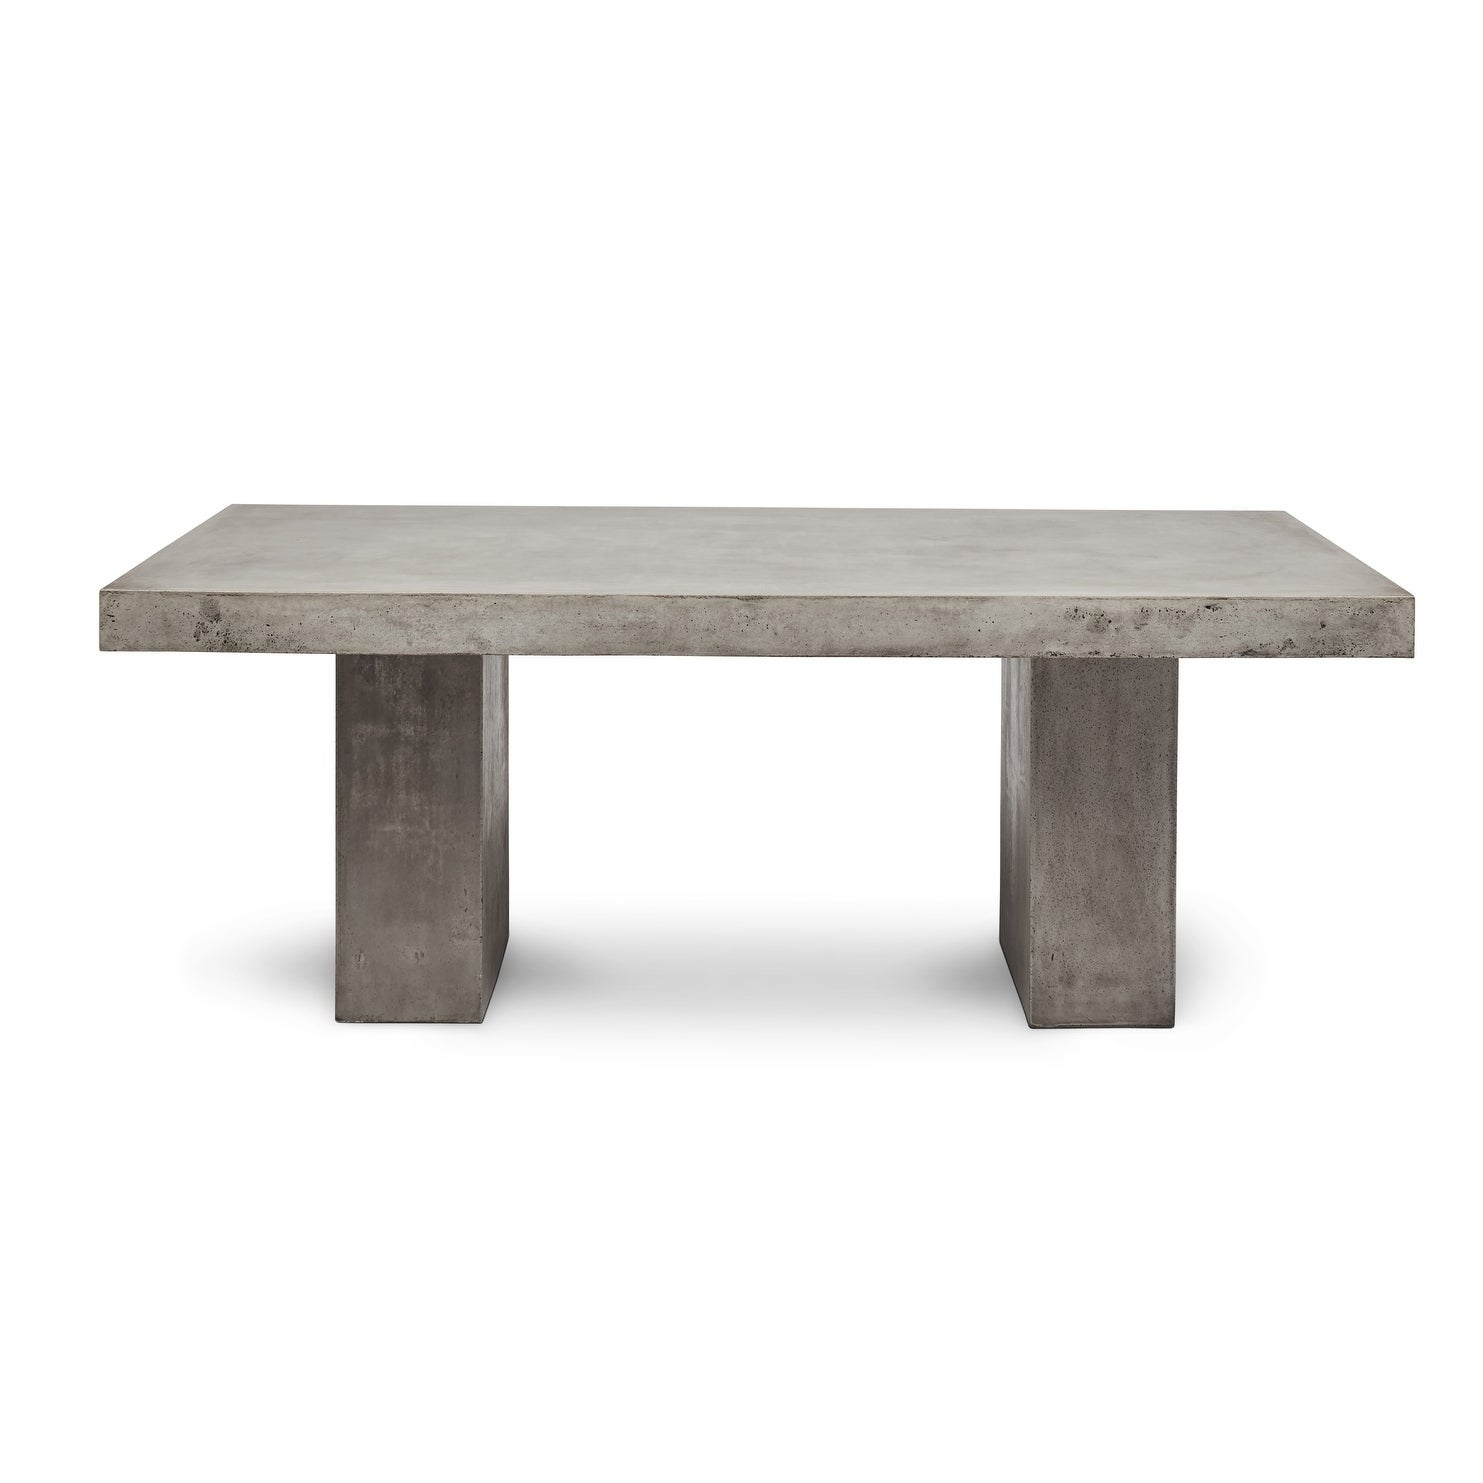 Peachy Buy Rectangle Outdoor Dining Tables Online At Overstock Gmtry Best Dining Table And Chair Ideas Images Gmtryco